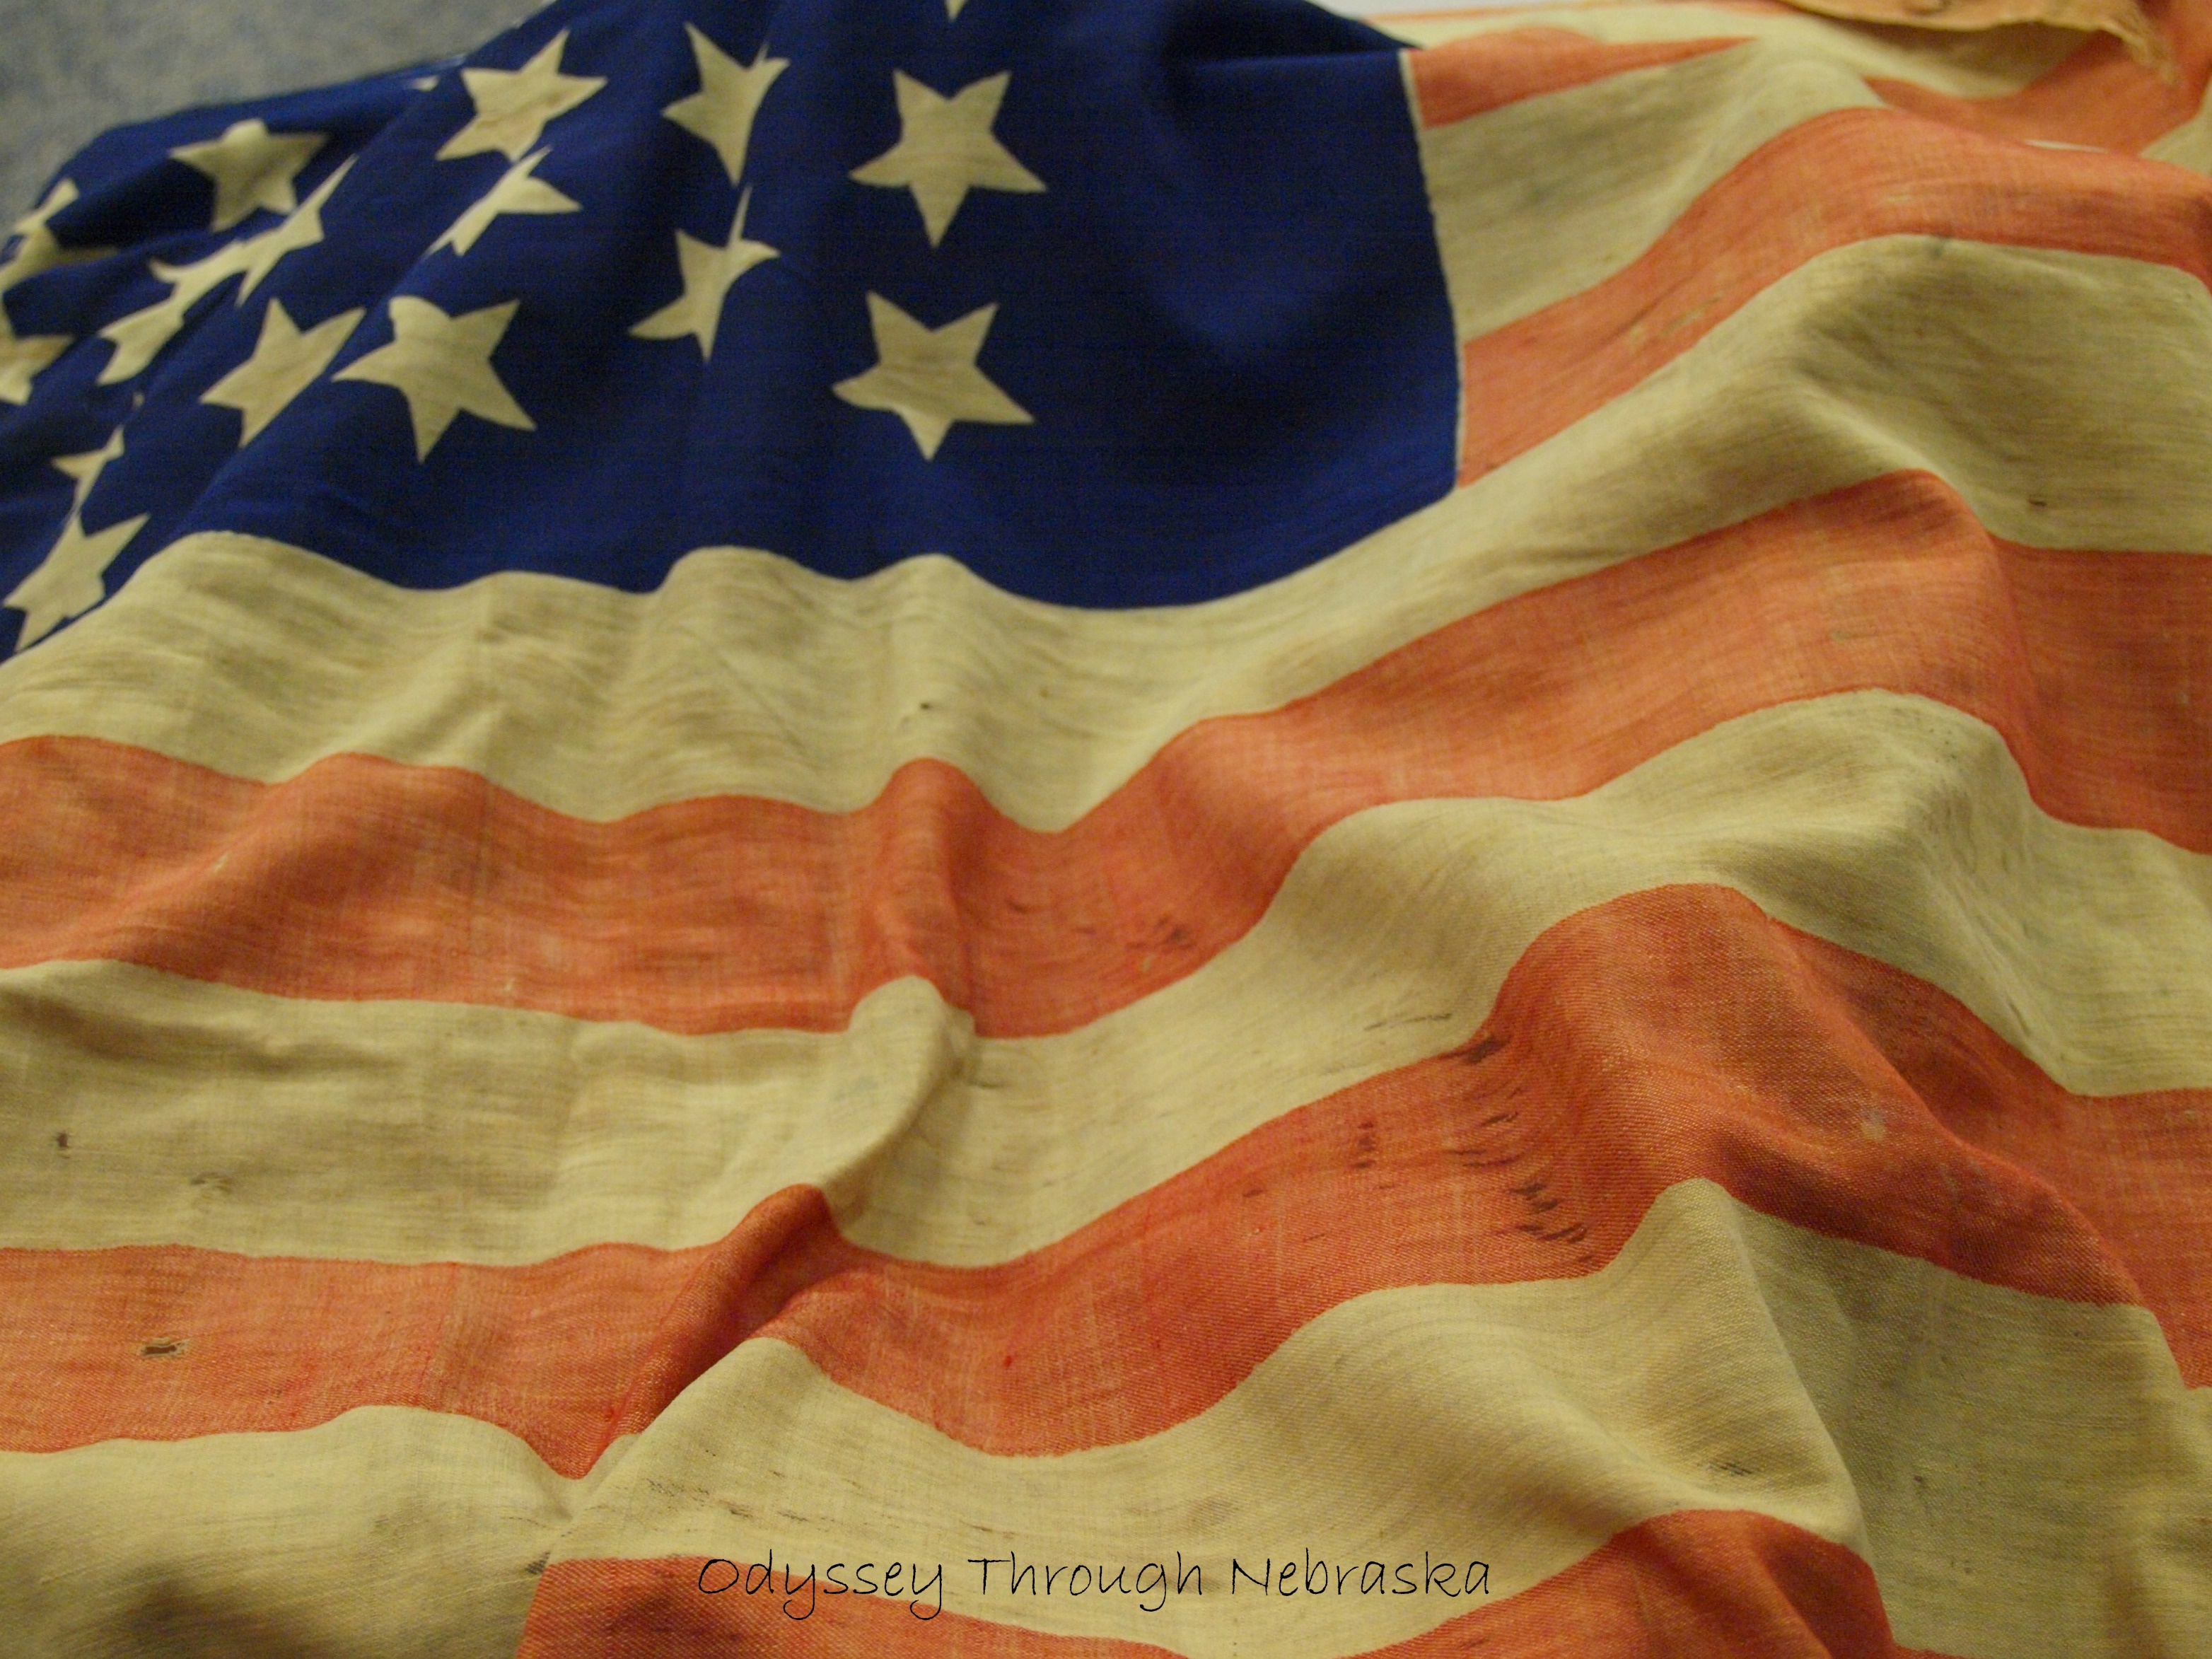 This Gettysburg flag is now a part of the Union College archive collection